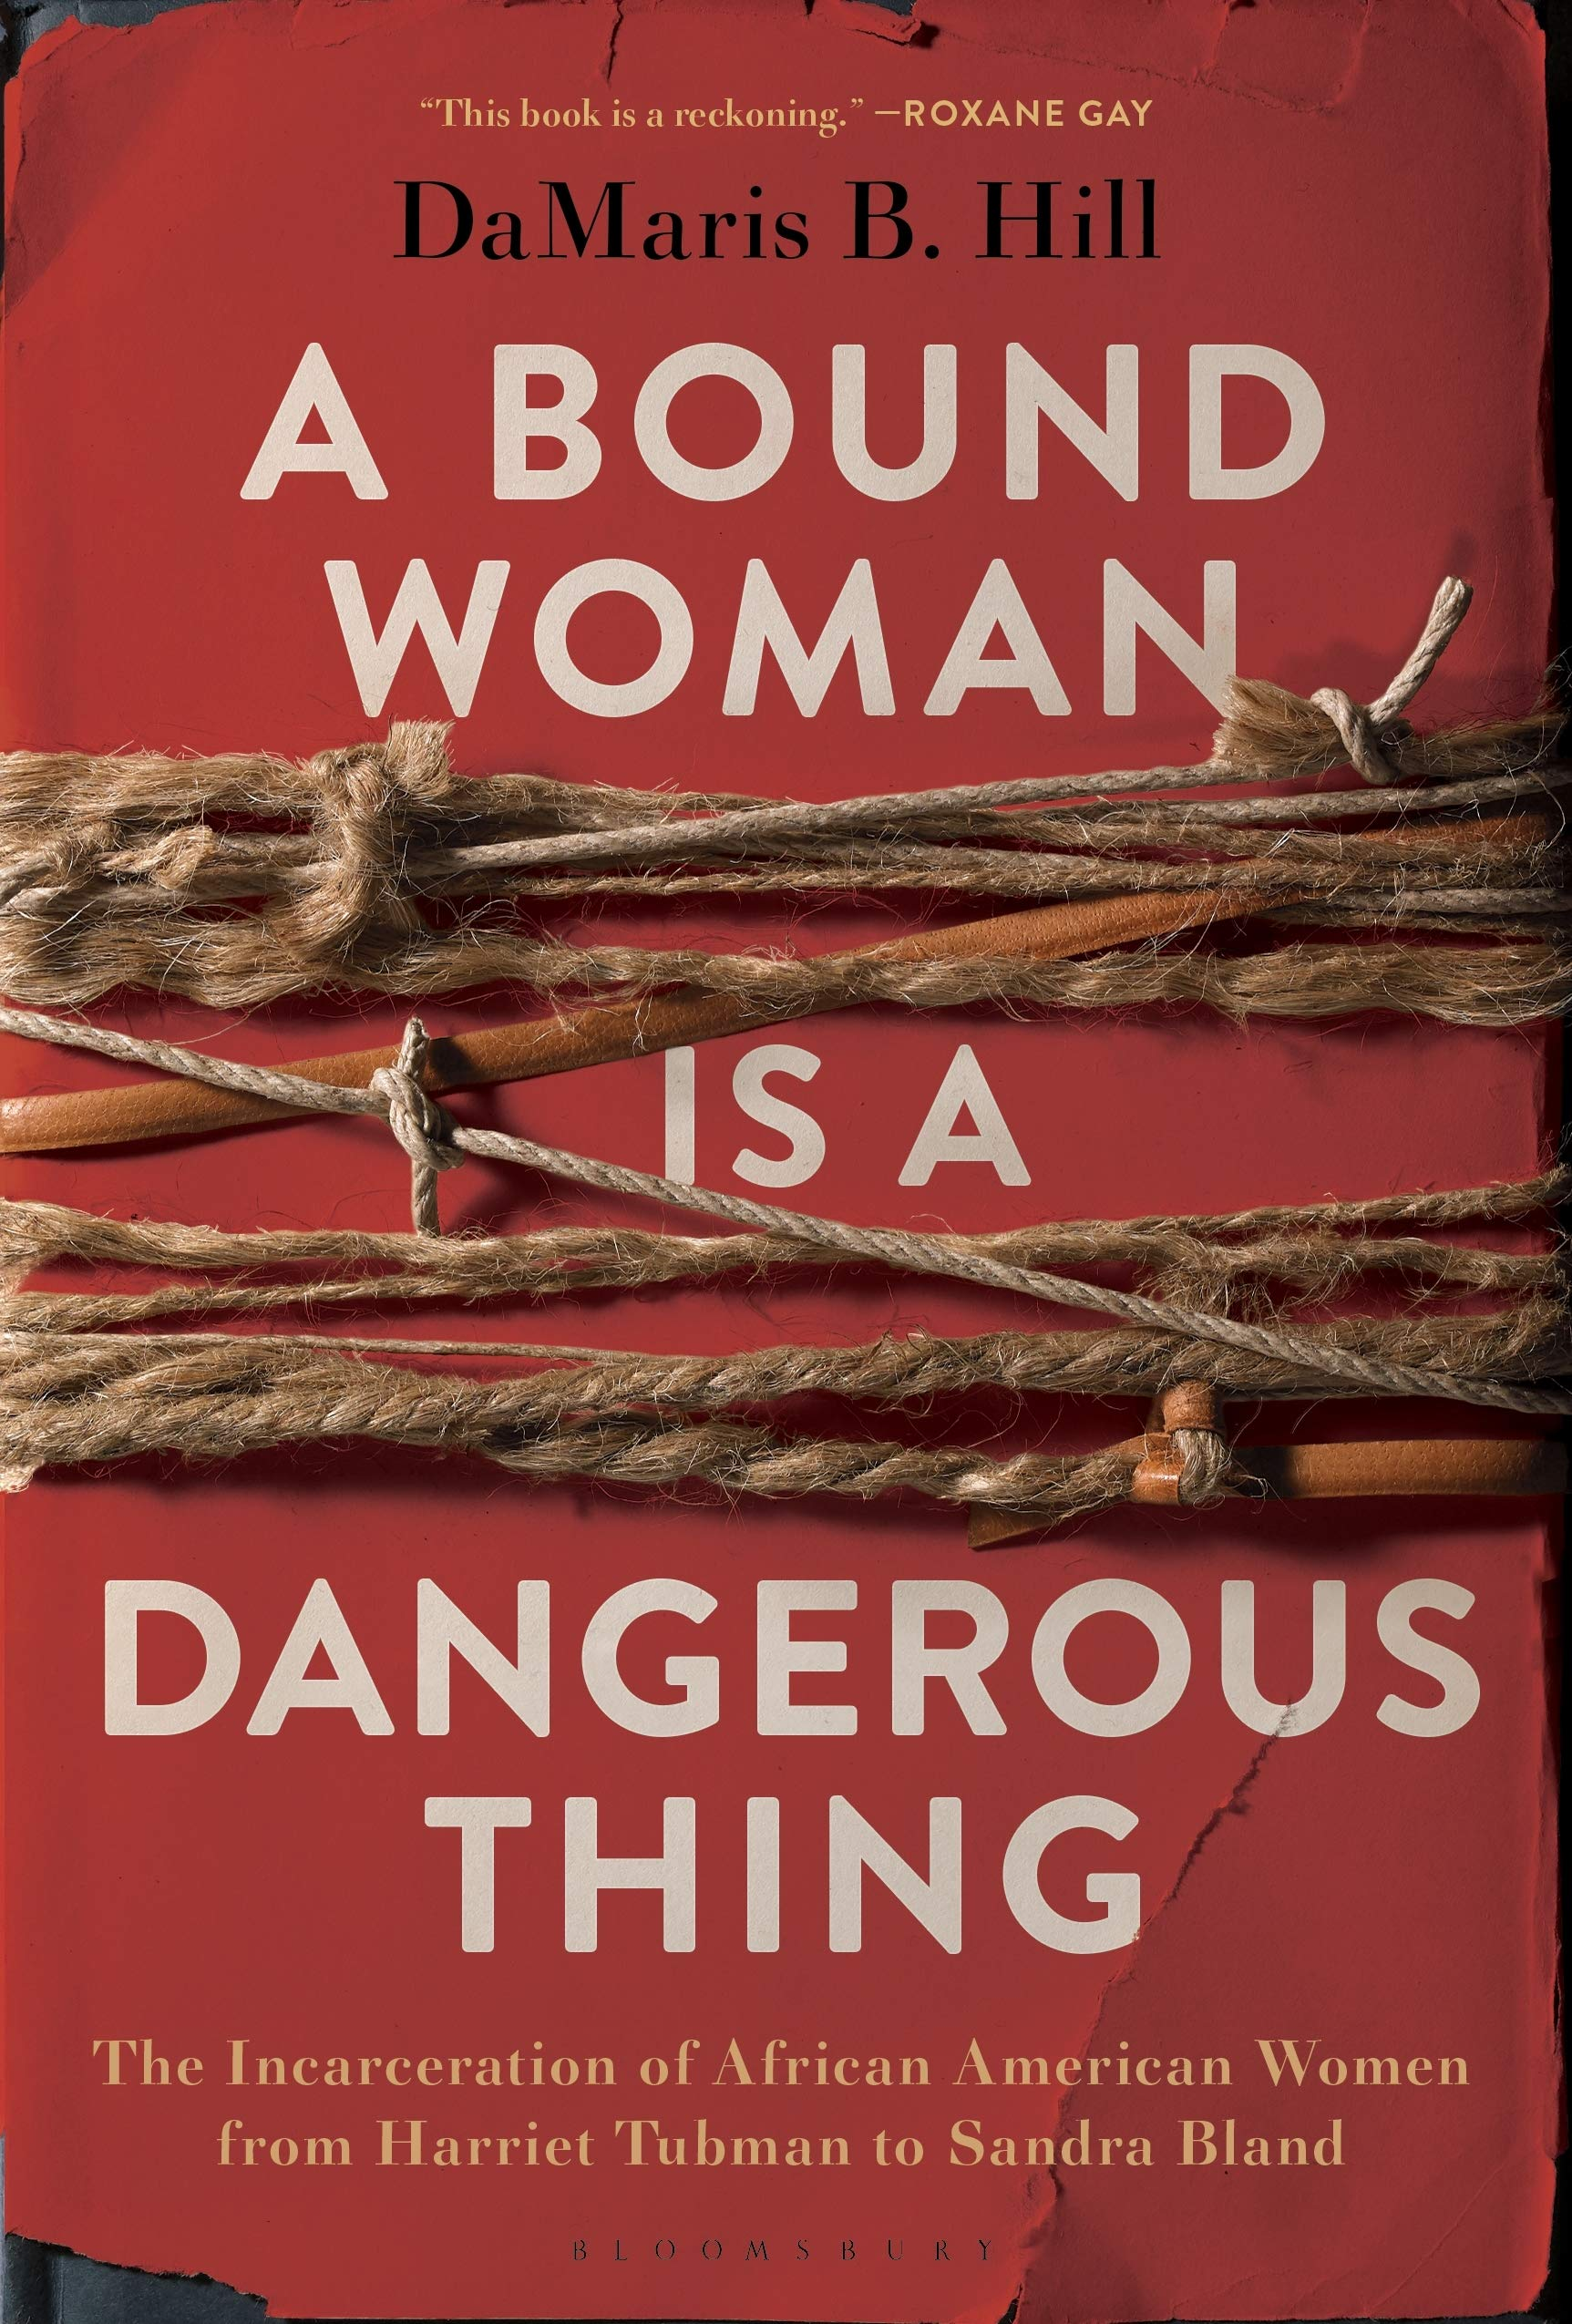 Amazon.com: A Bound Woman Is a Dangerous Thing: The Incarceration of  African American Women from Harriet Tubman to Sandra Bland (9781635572612):  Hill, DaMaris: Books